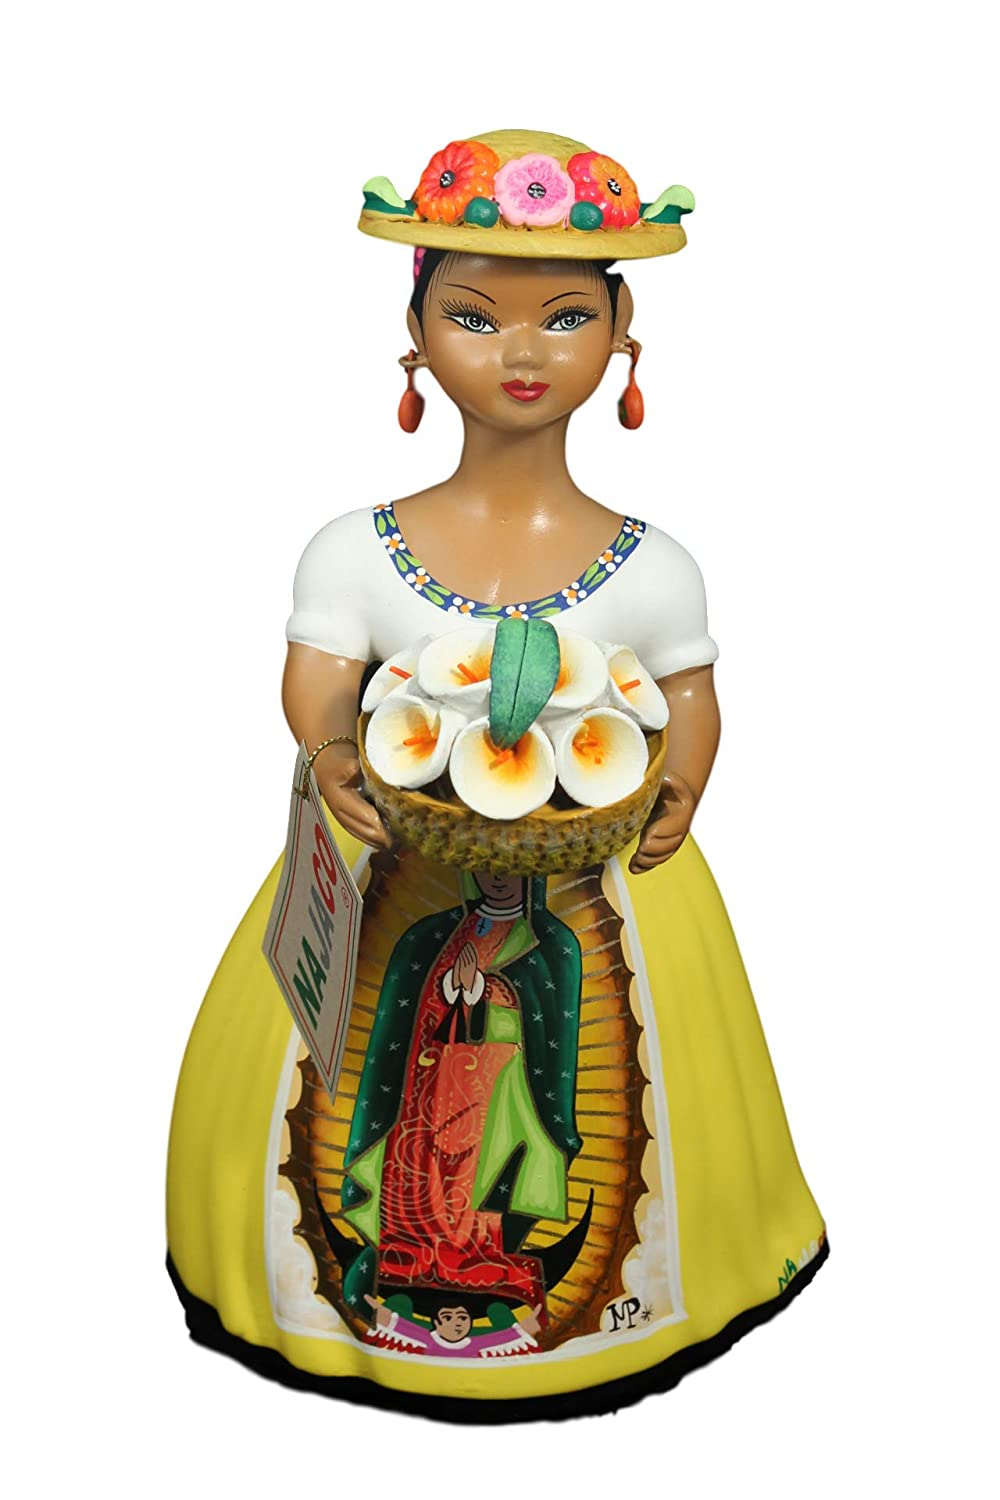 NAJACO Premium Mexican Lupita Doll, Our Lady of Guadalupe Calla Lily, (Yellow) E-01-Ye